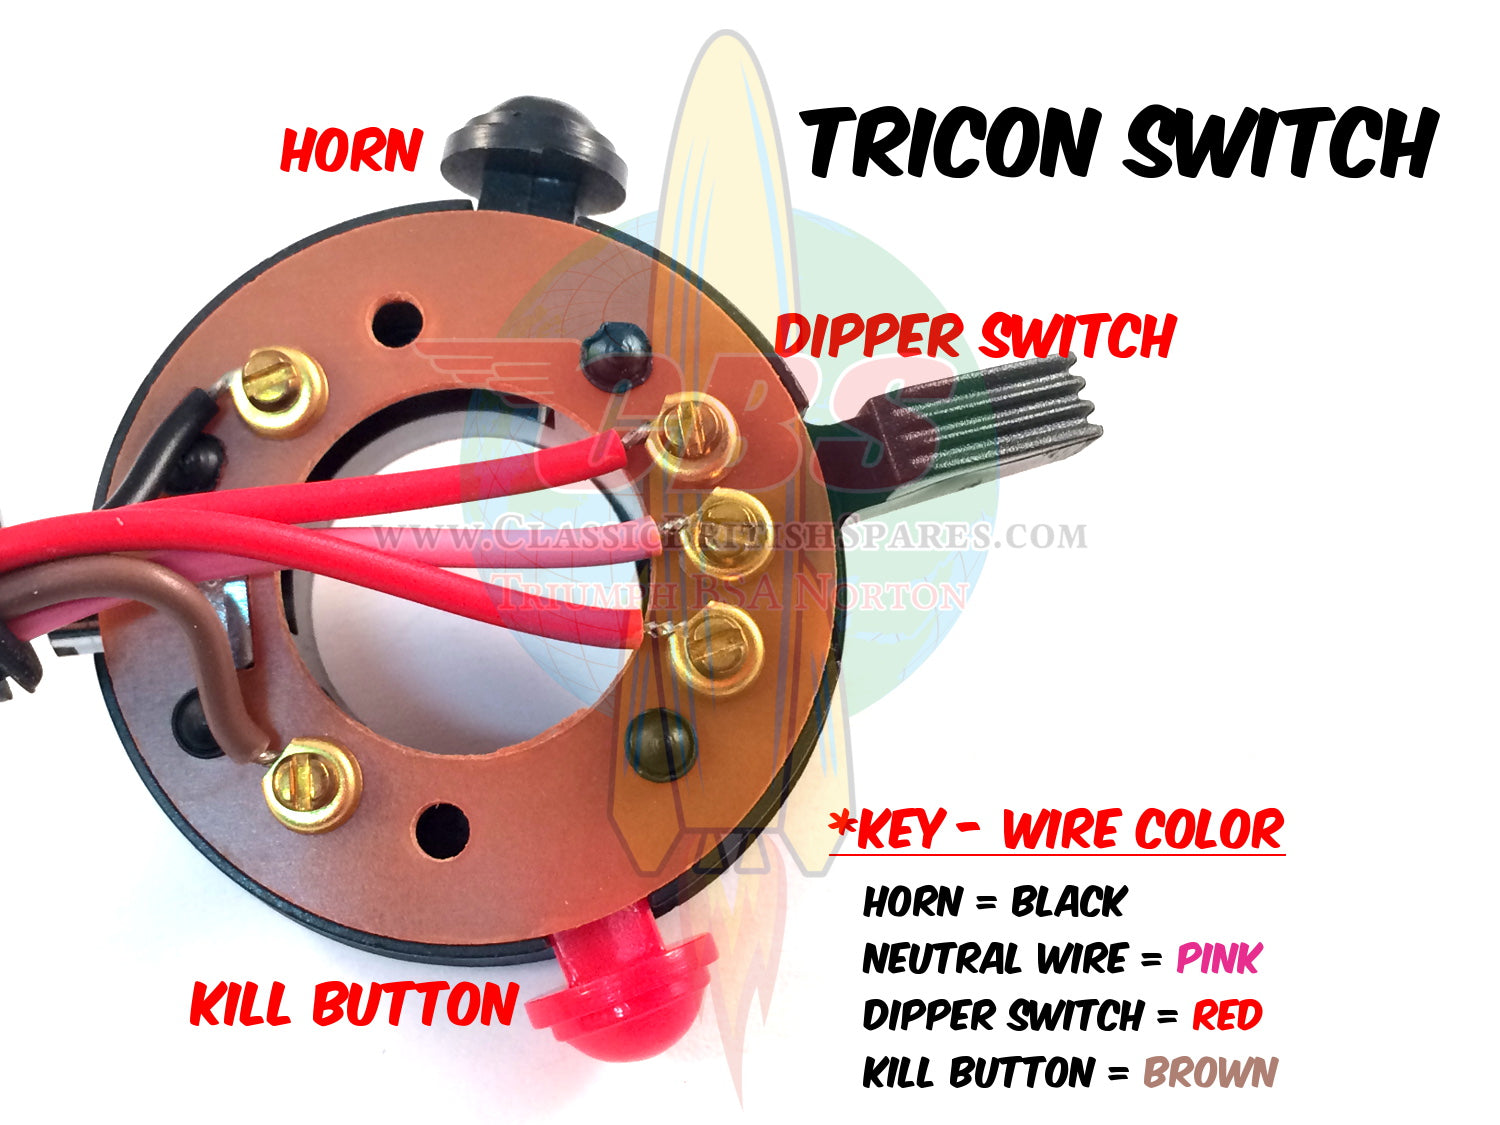 Wipac Ducon Tricon Switch Wiring Bsa A10 Diagram